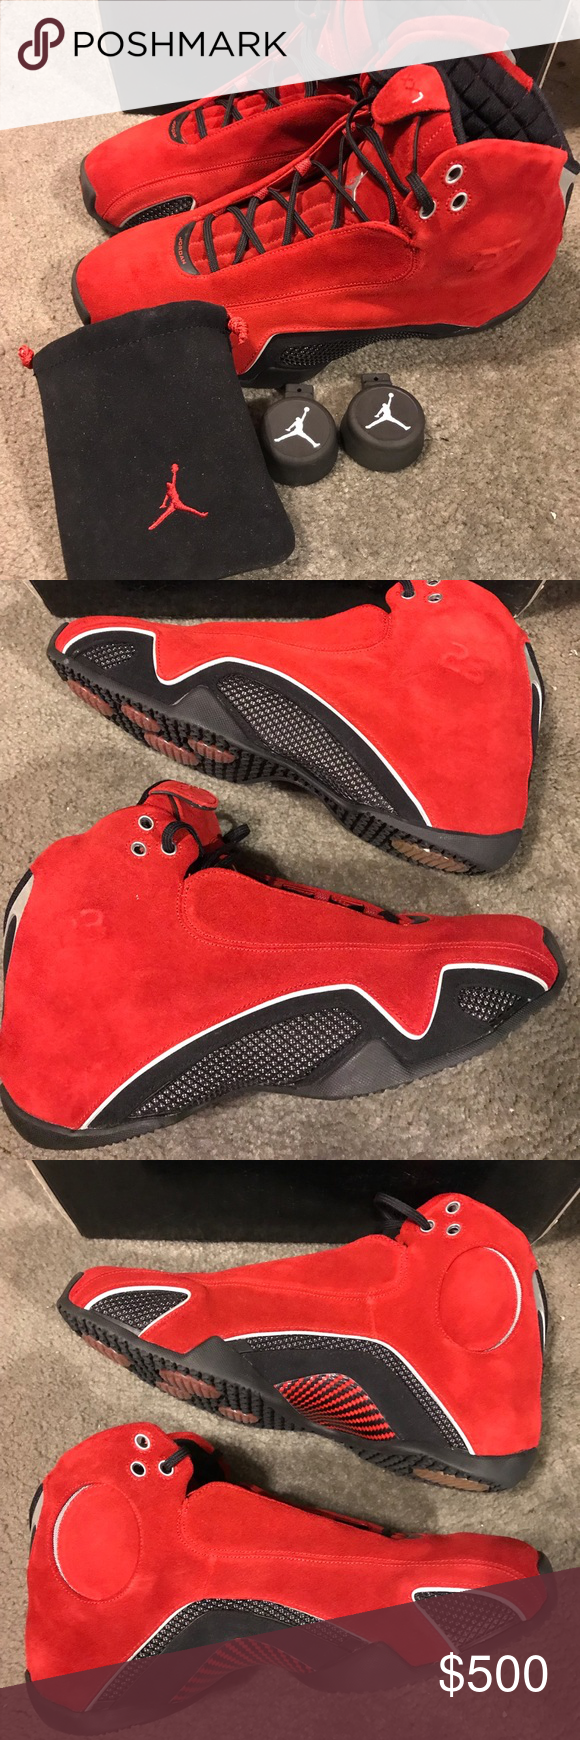 3a4aced66b07ce Spotted while shopping on Poshmark  Air Jordan XXI 21 Red Suede Size 13!   poshmark  fashion  shopping  style  Jordan  Other